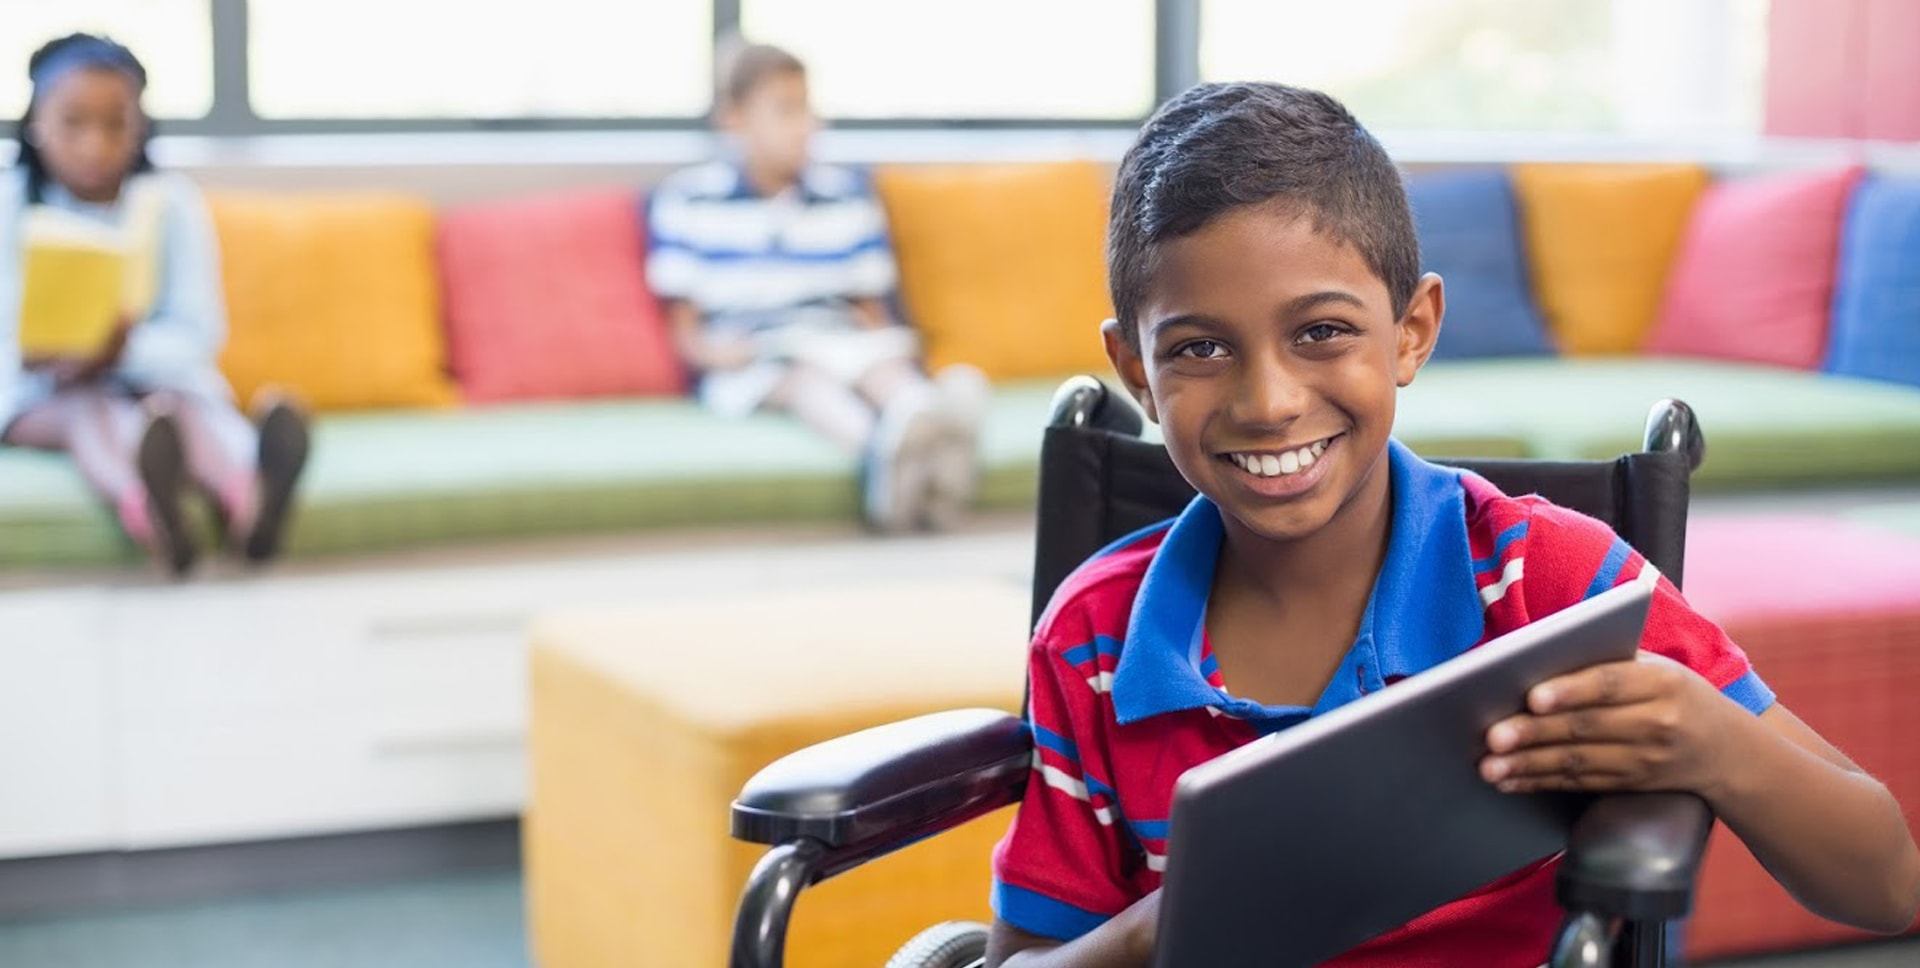 Banner image showing an Indian boy in a wheelchair holding an iPad